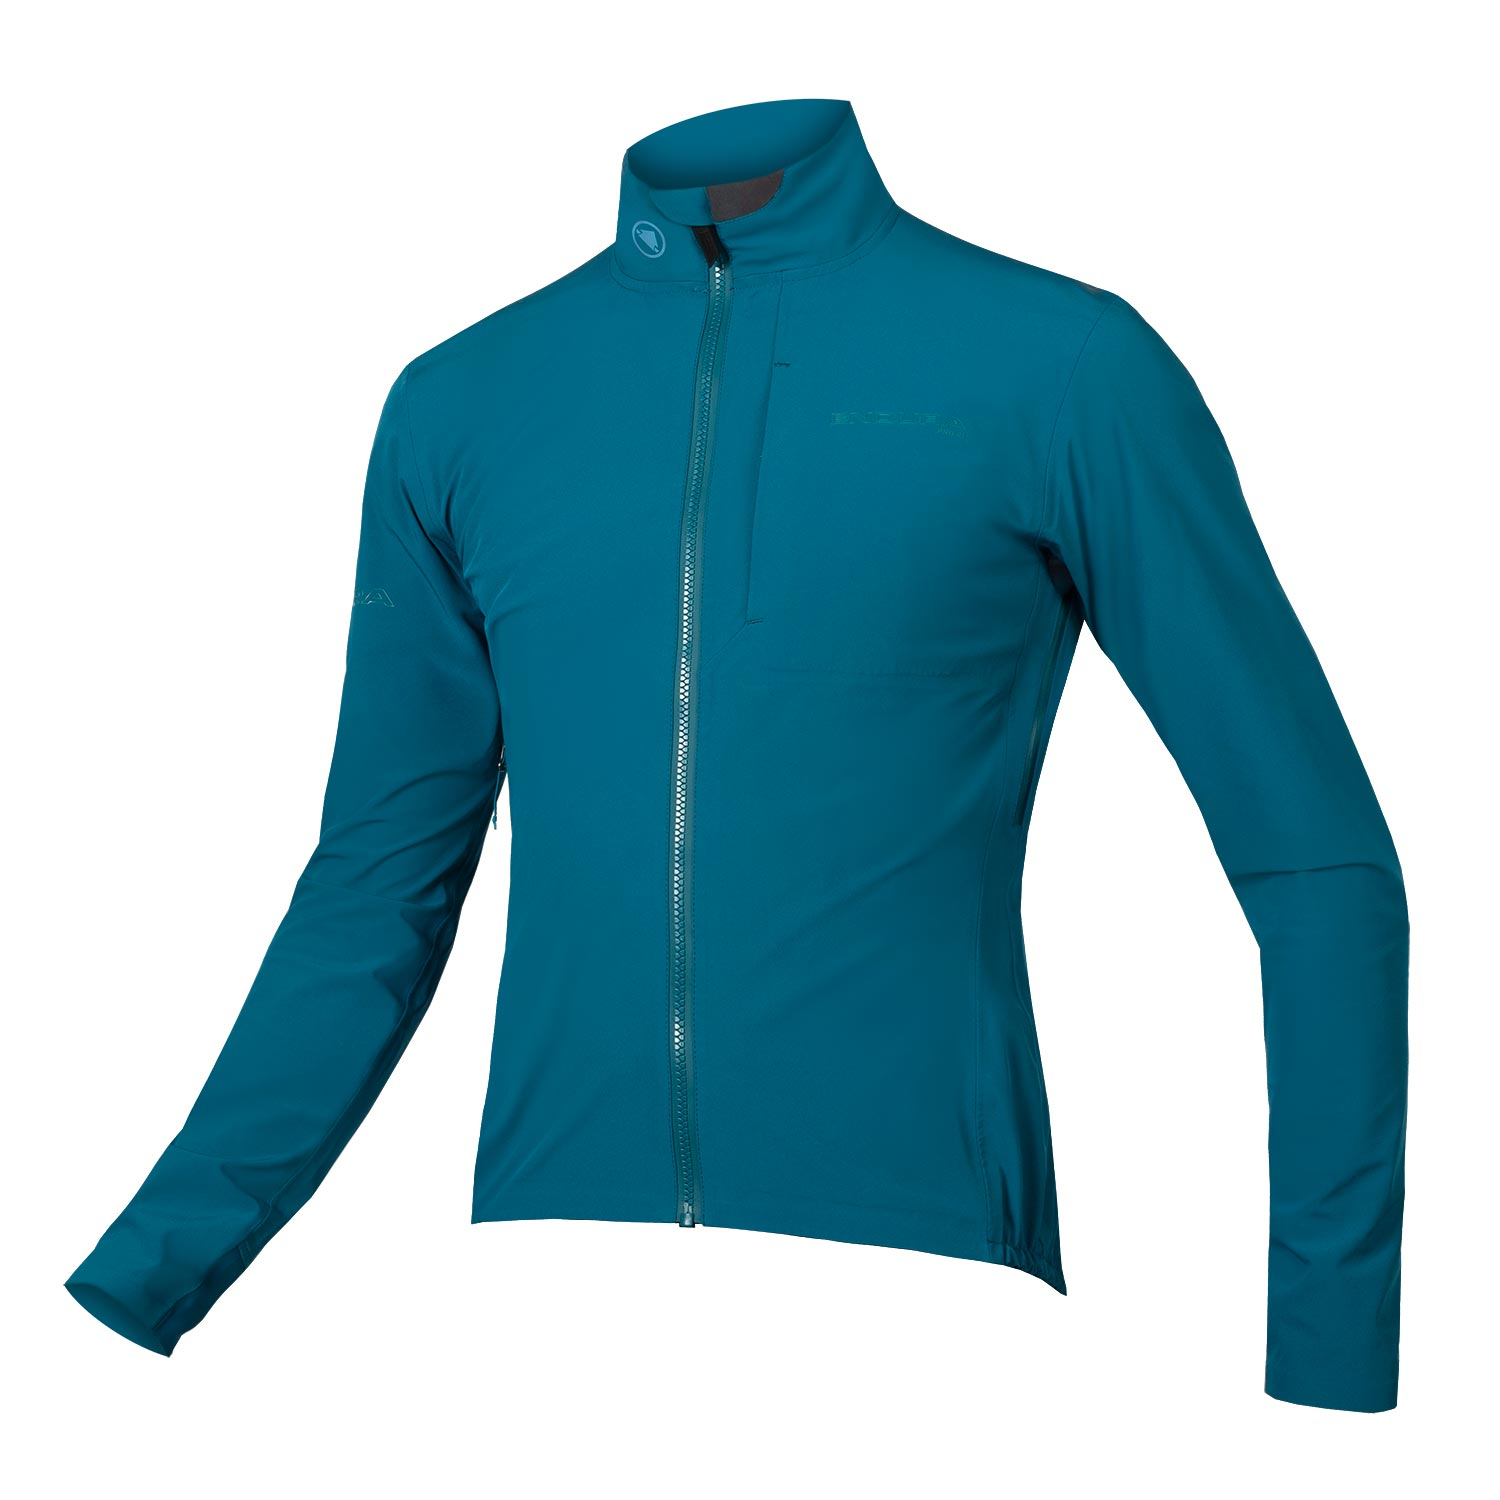 Endura Pro SL Softshell Waterproof Jacket